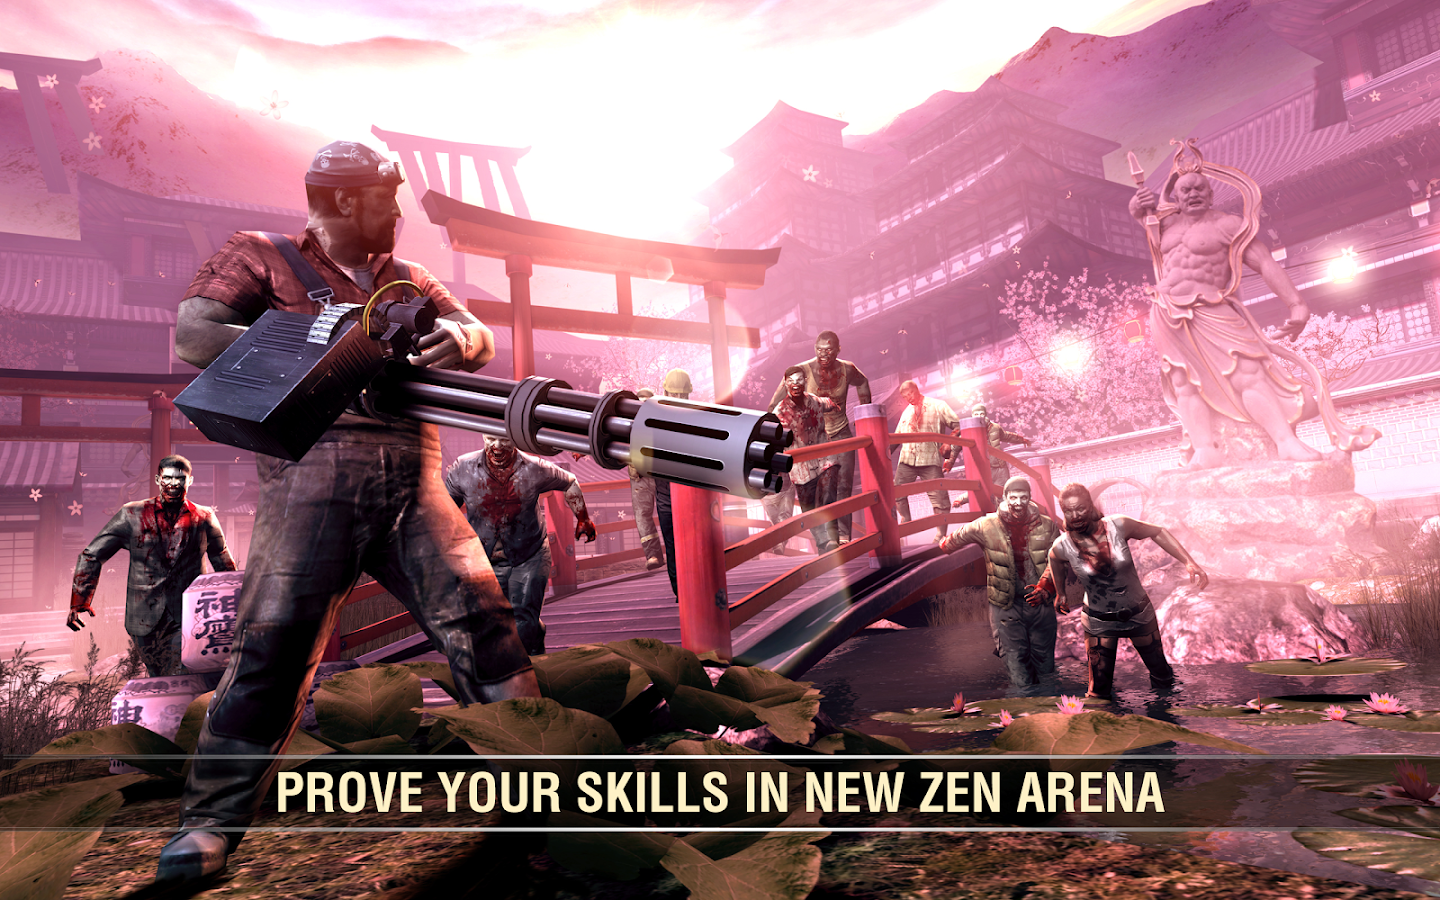 Dead Trigger 2: First Person Zombie Shooter Game Screenshot 11